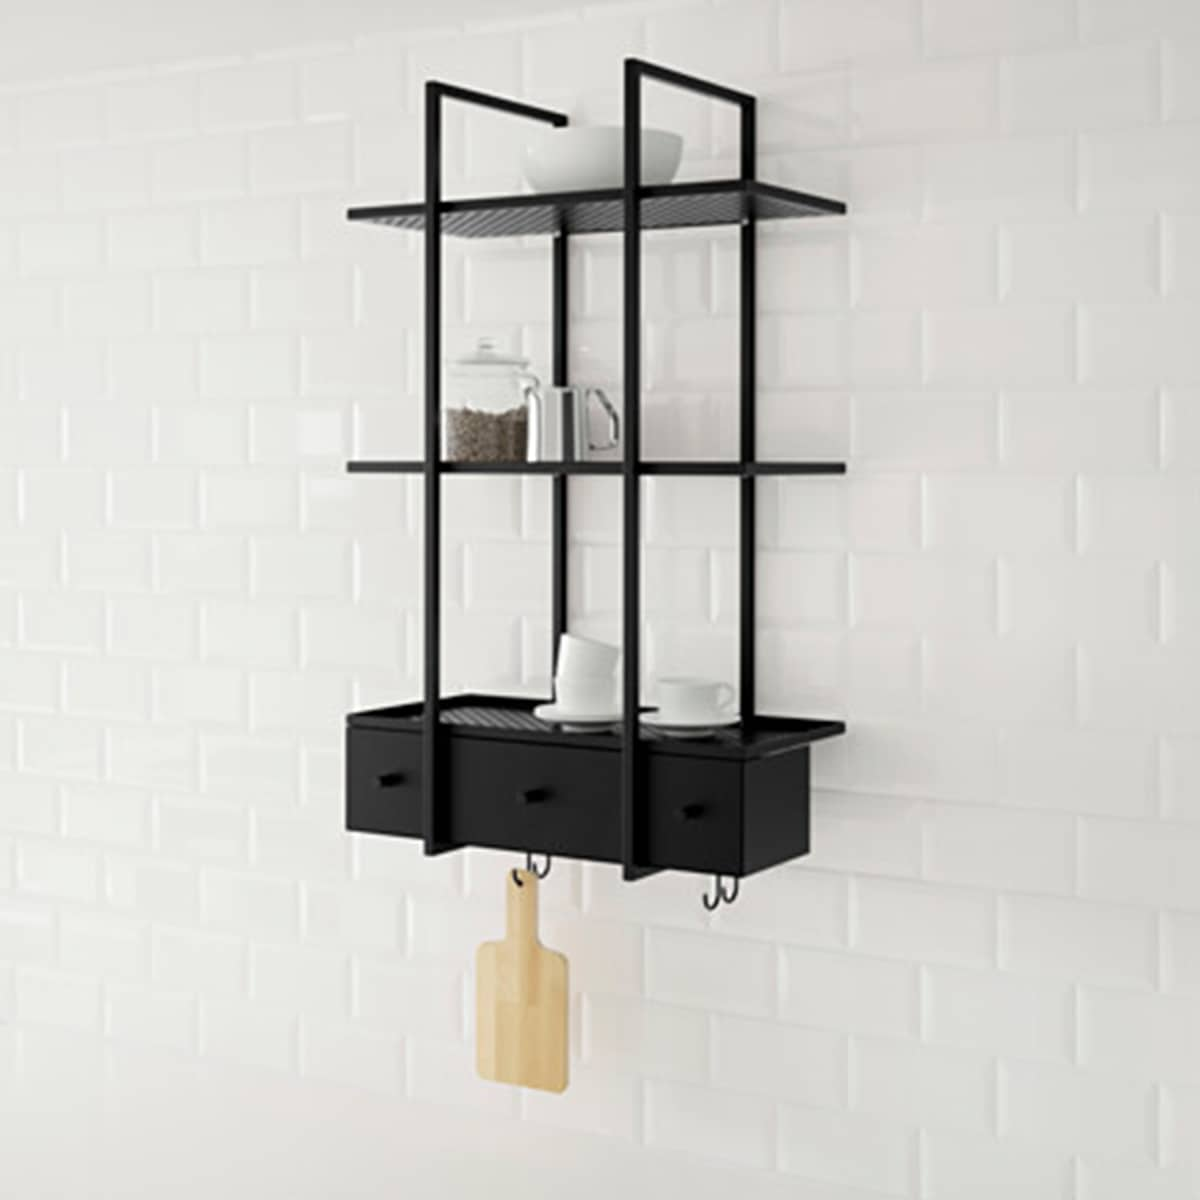 Charmant The Best Kitchen Shelves From IKEA: Gallery Image 11